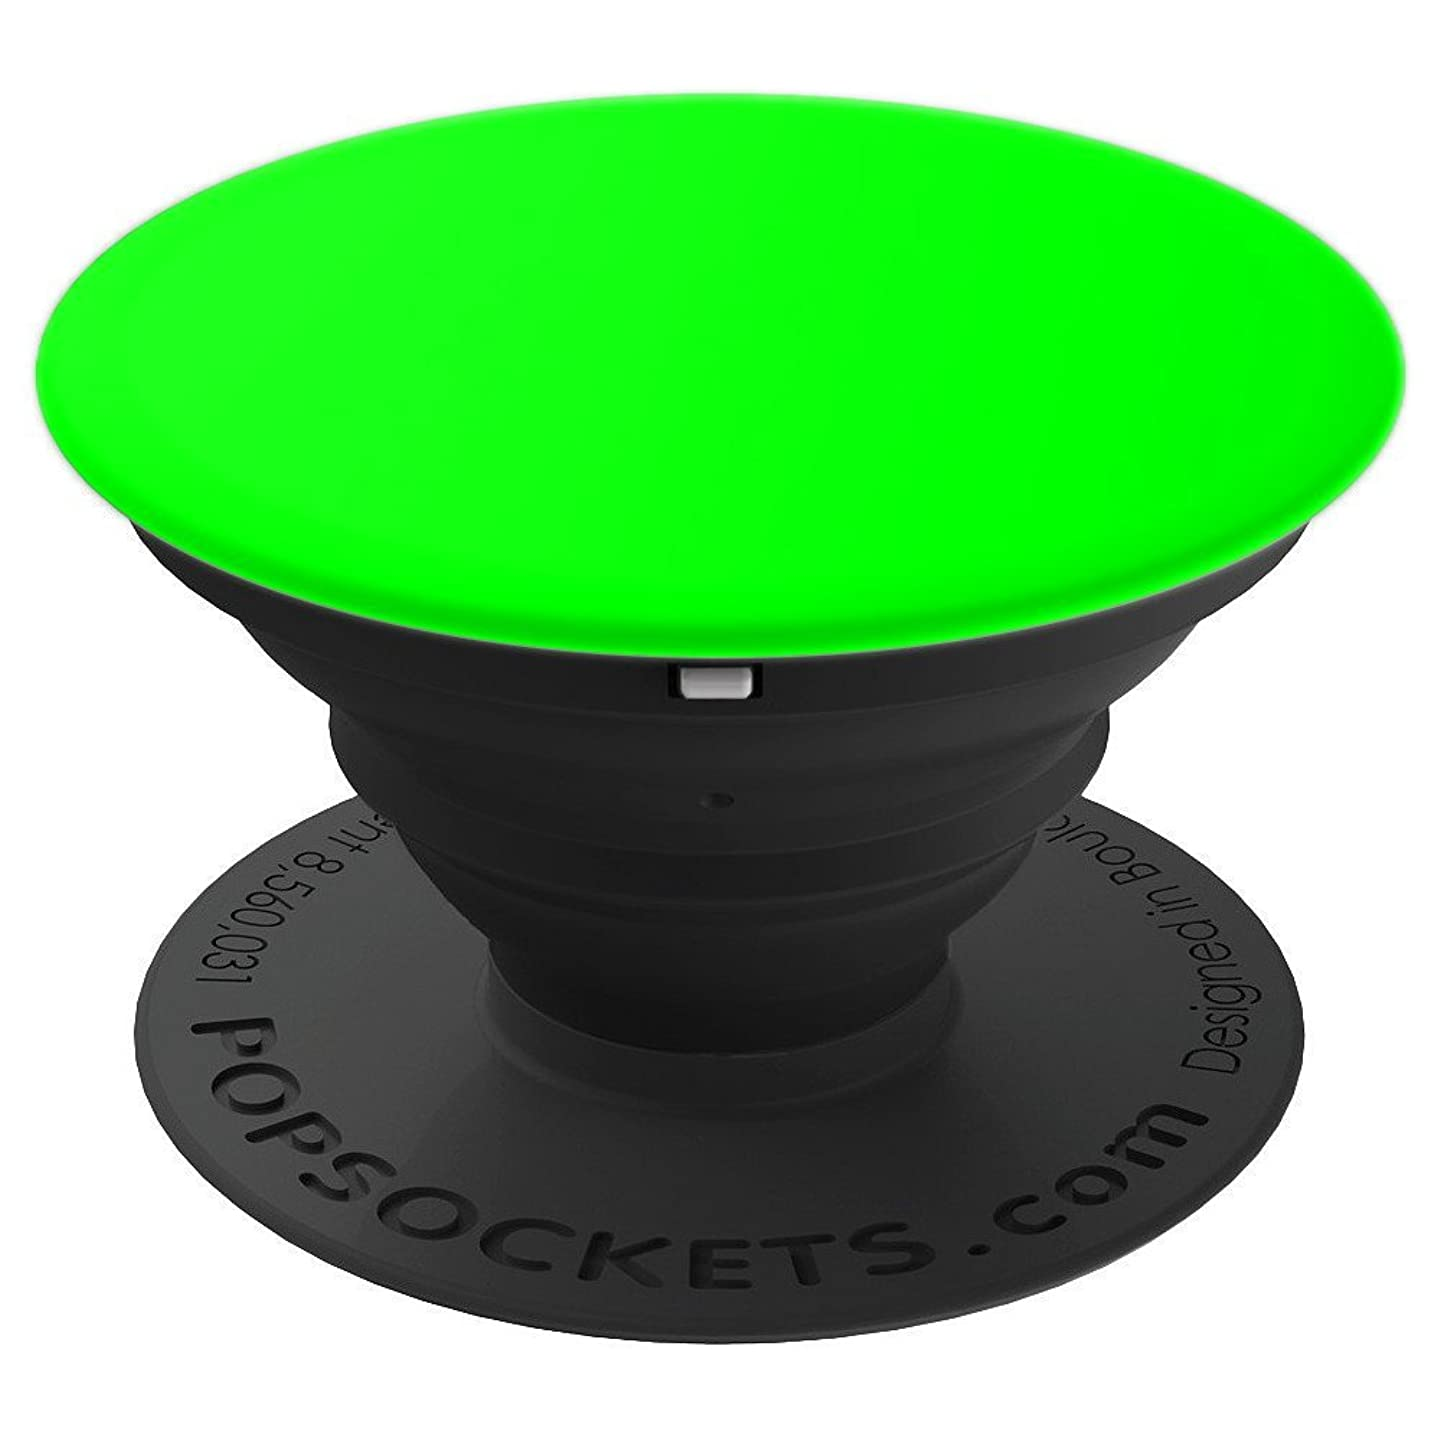 Neon Green Pop Socket Fluorescent Uv Light Phone Charge Case - PopSockets Grip and Stand for Phones and Tablets